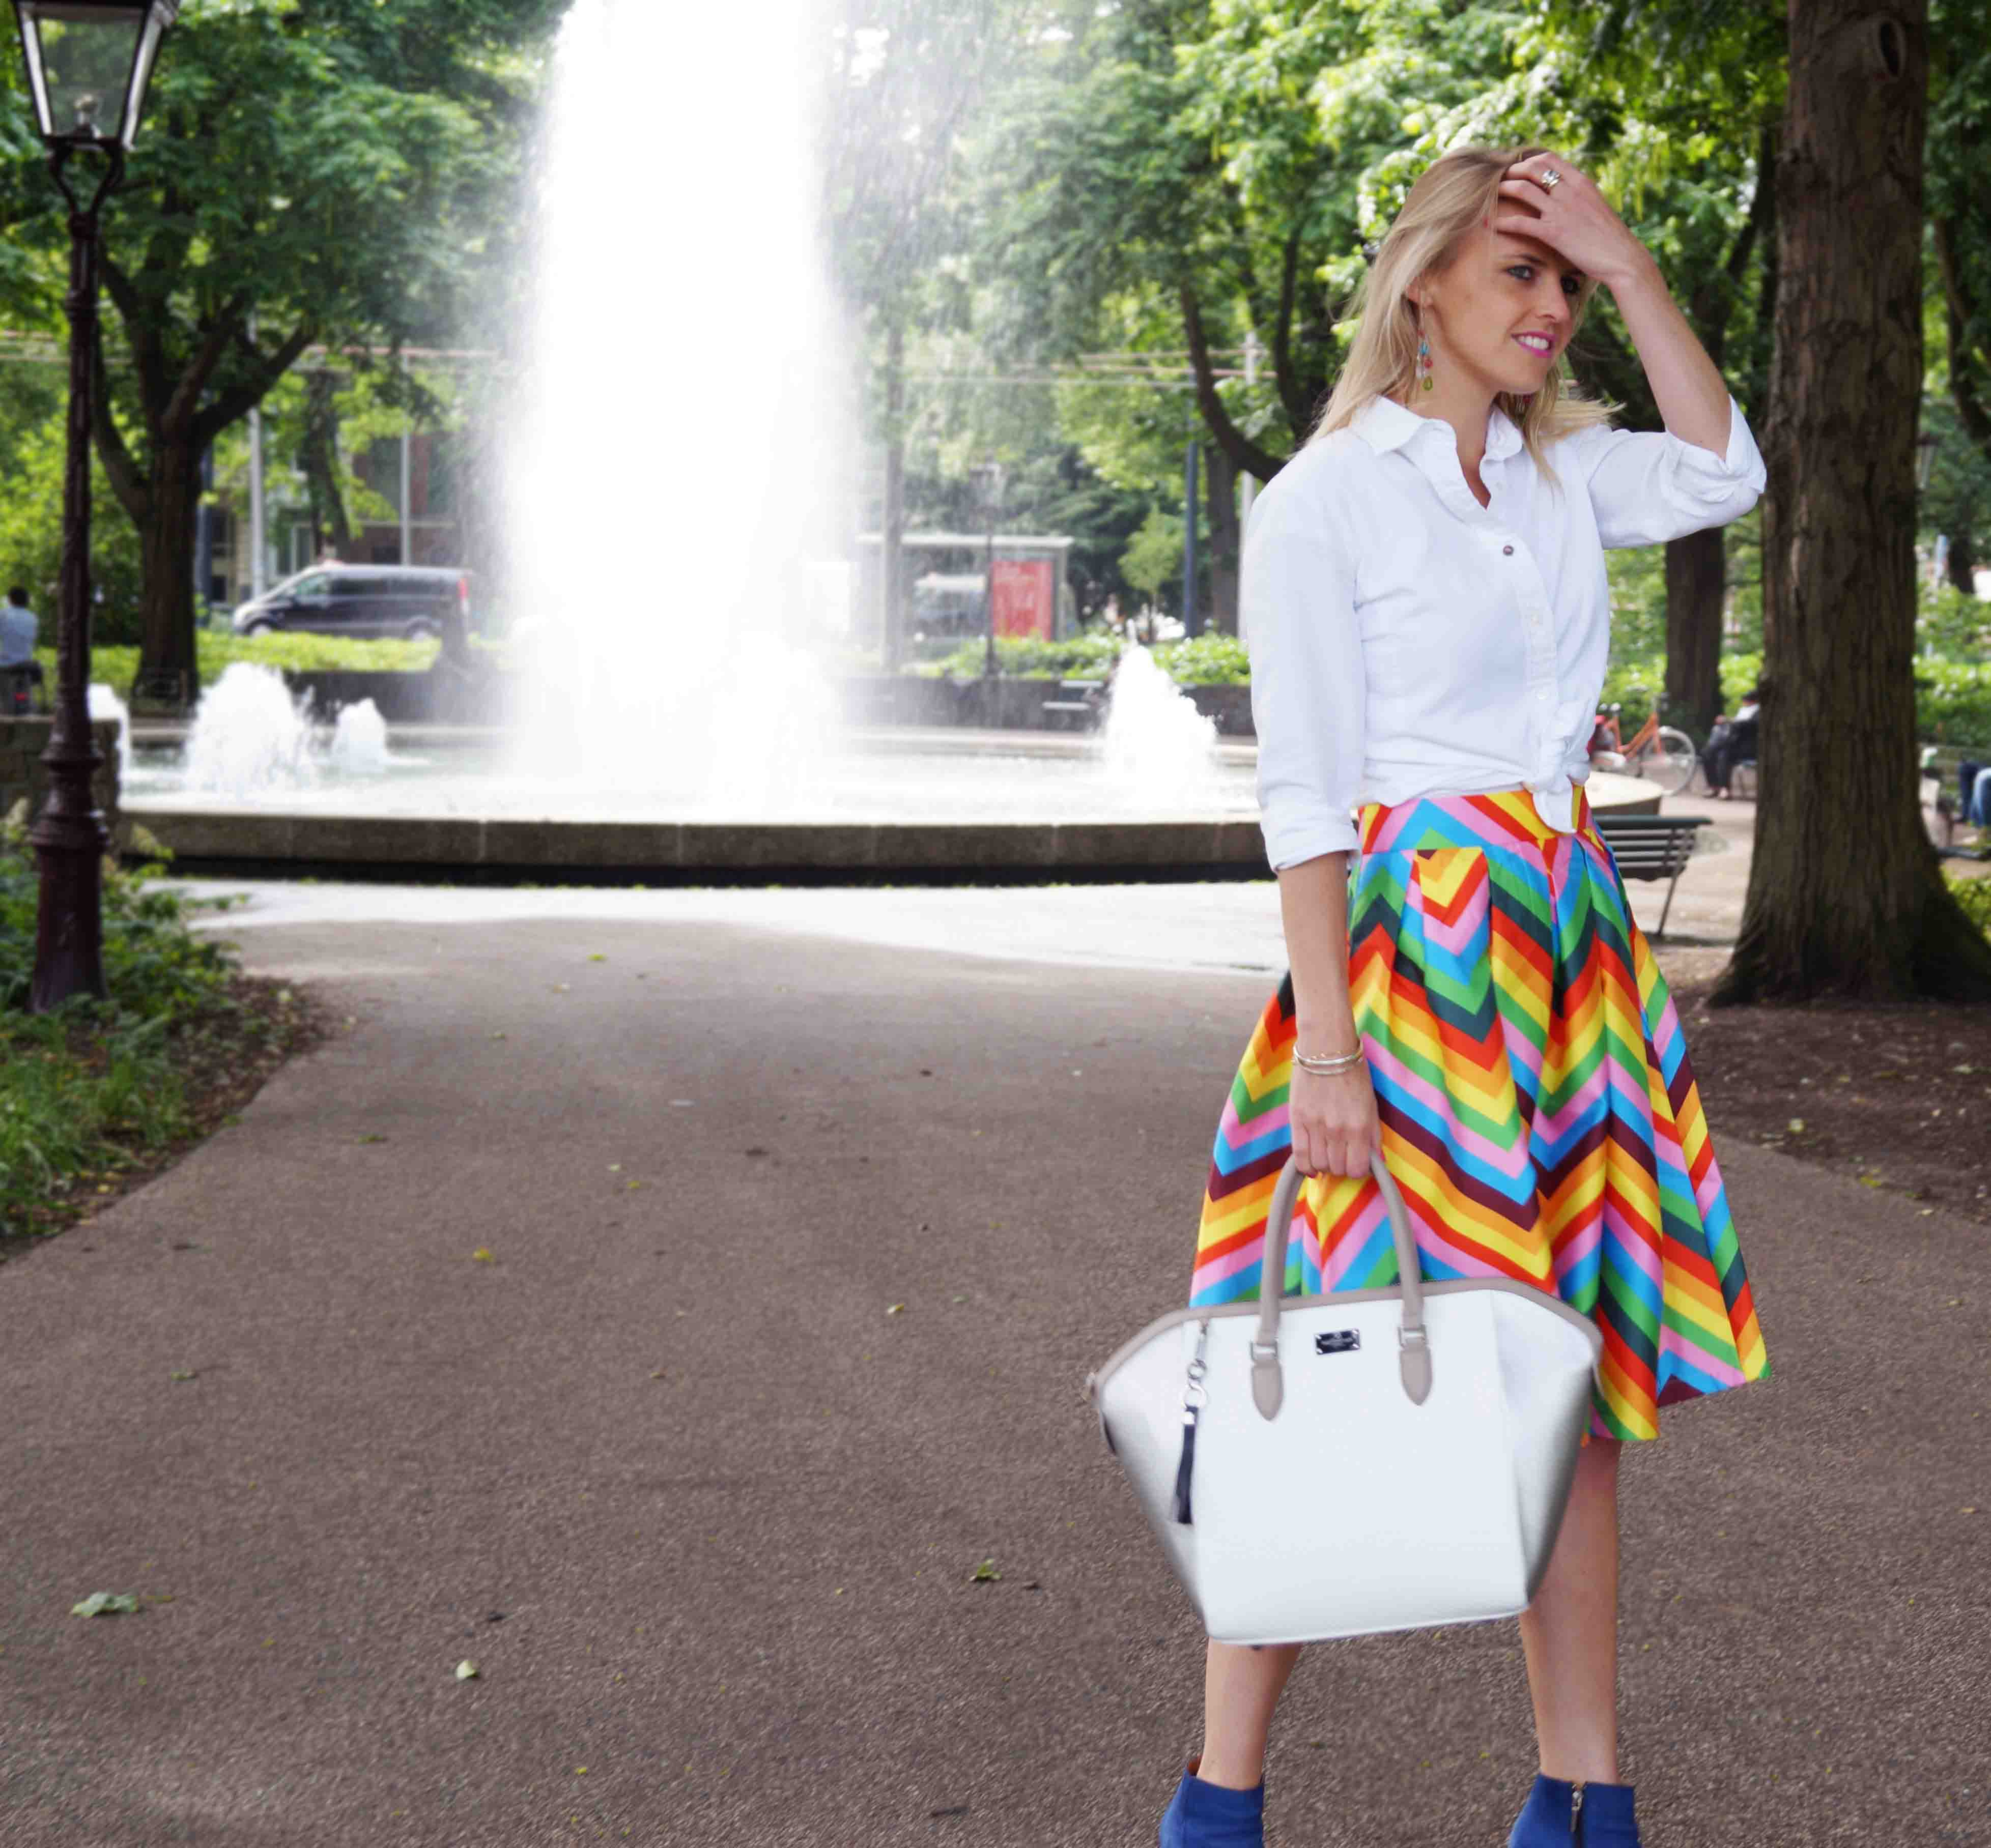 Bag at You - Fashion Blog - Paul's Boutique bags - Tassen SS15 - Summer OOTD - color